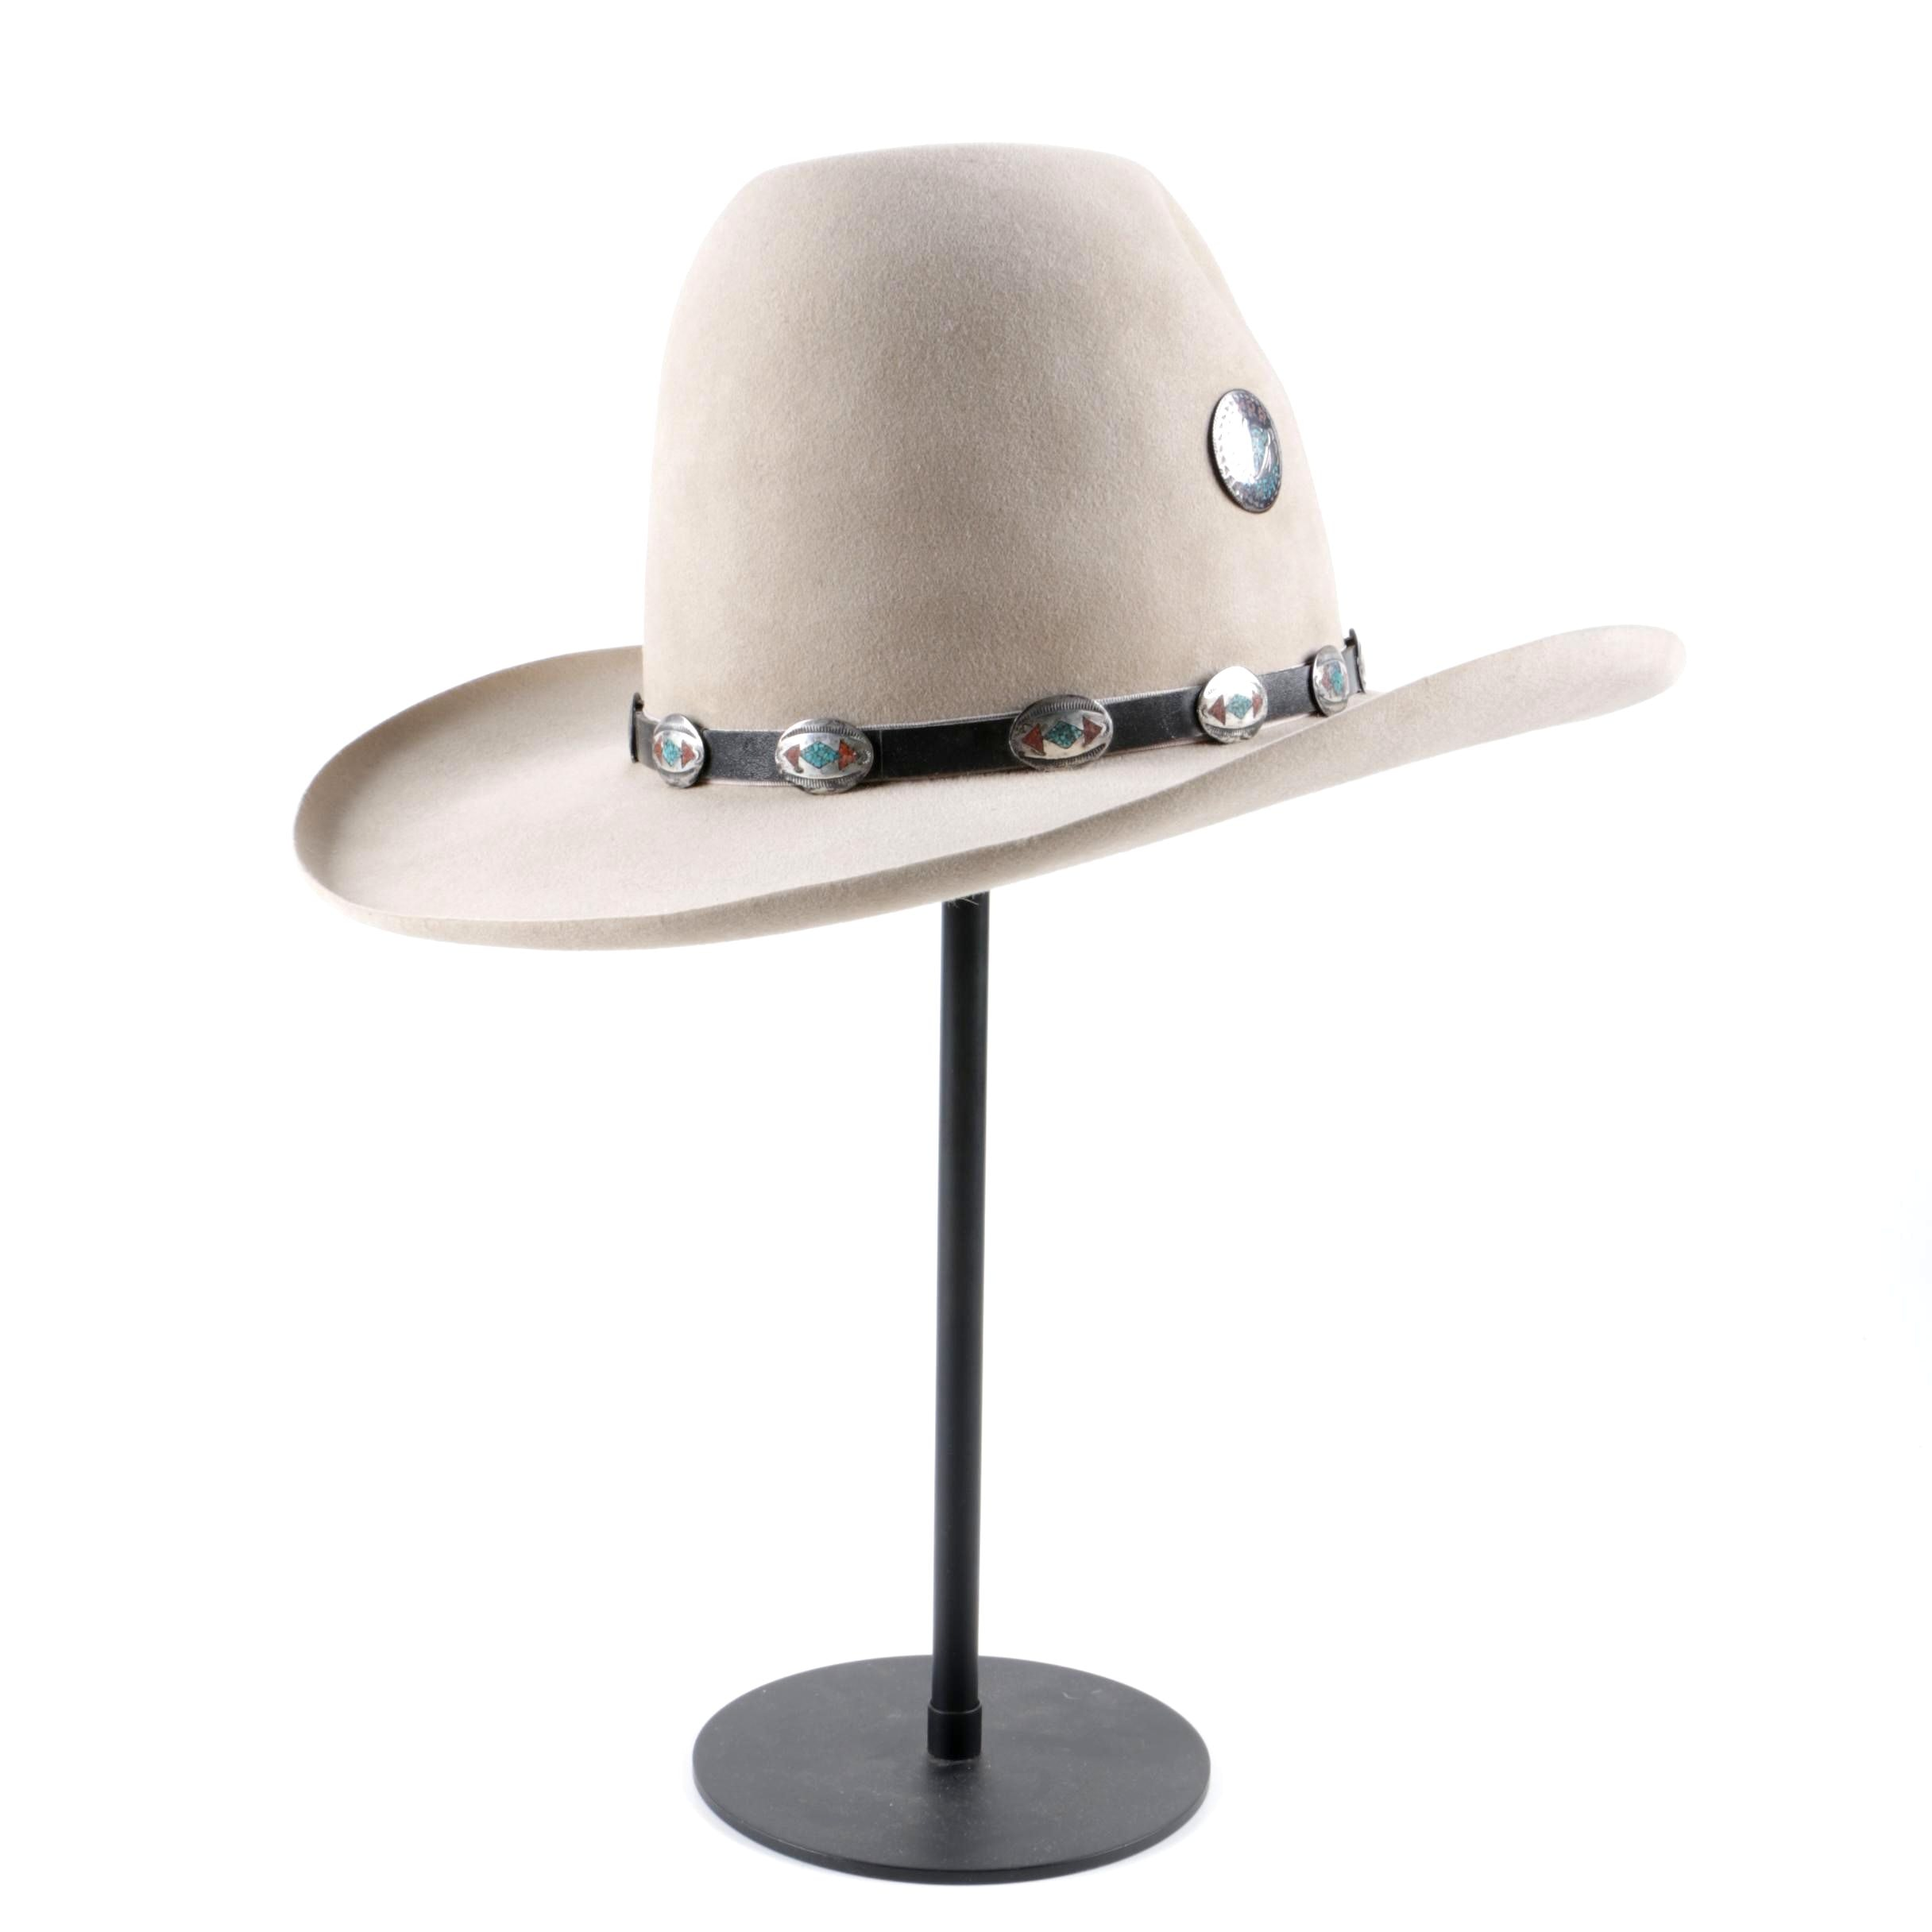 Men's Custom Made Kirkpatrick Felt Cowboy Hat with Sterling Silver Accents